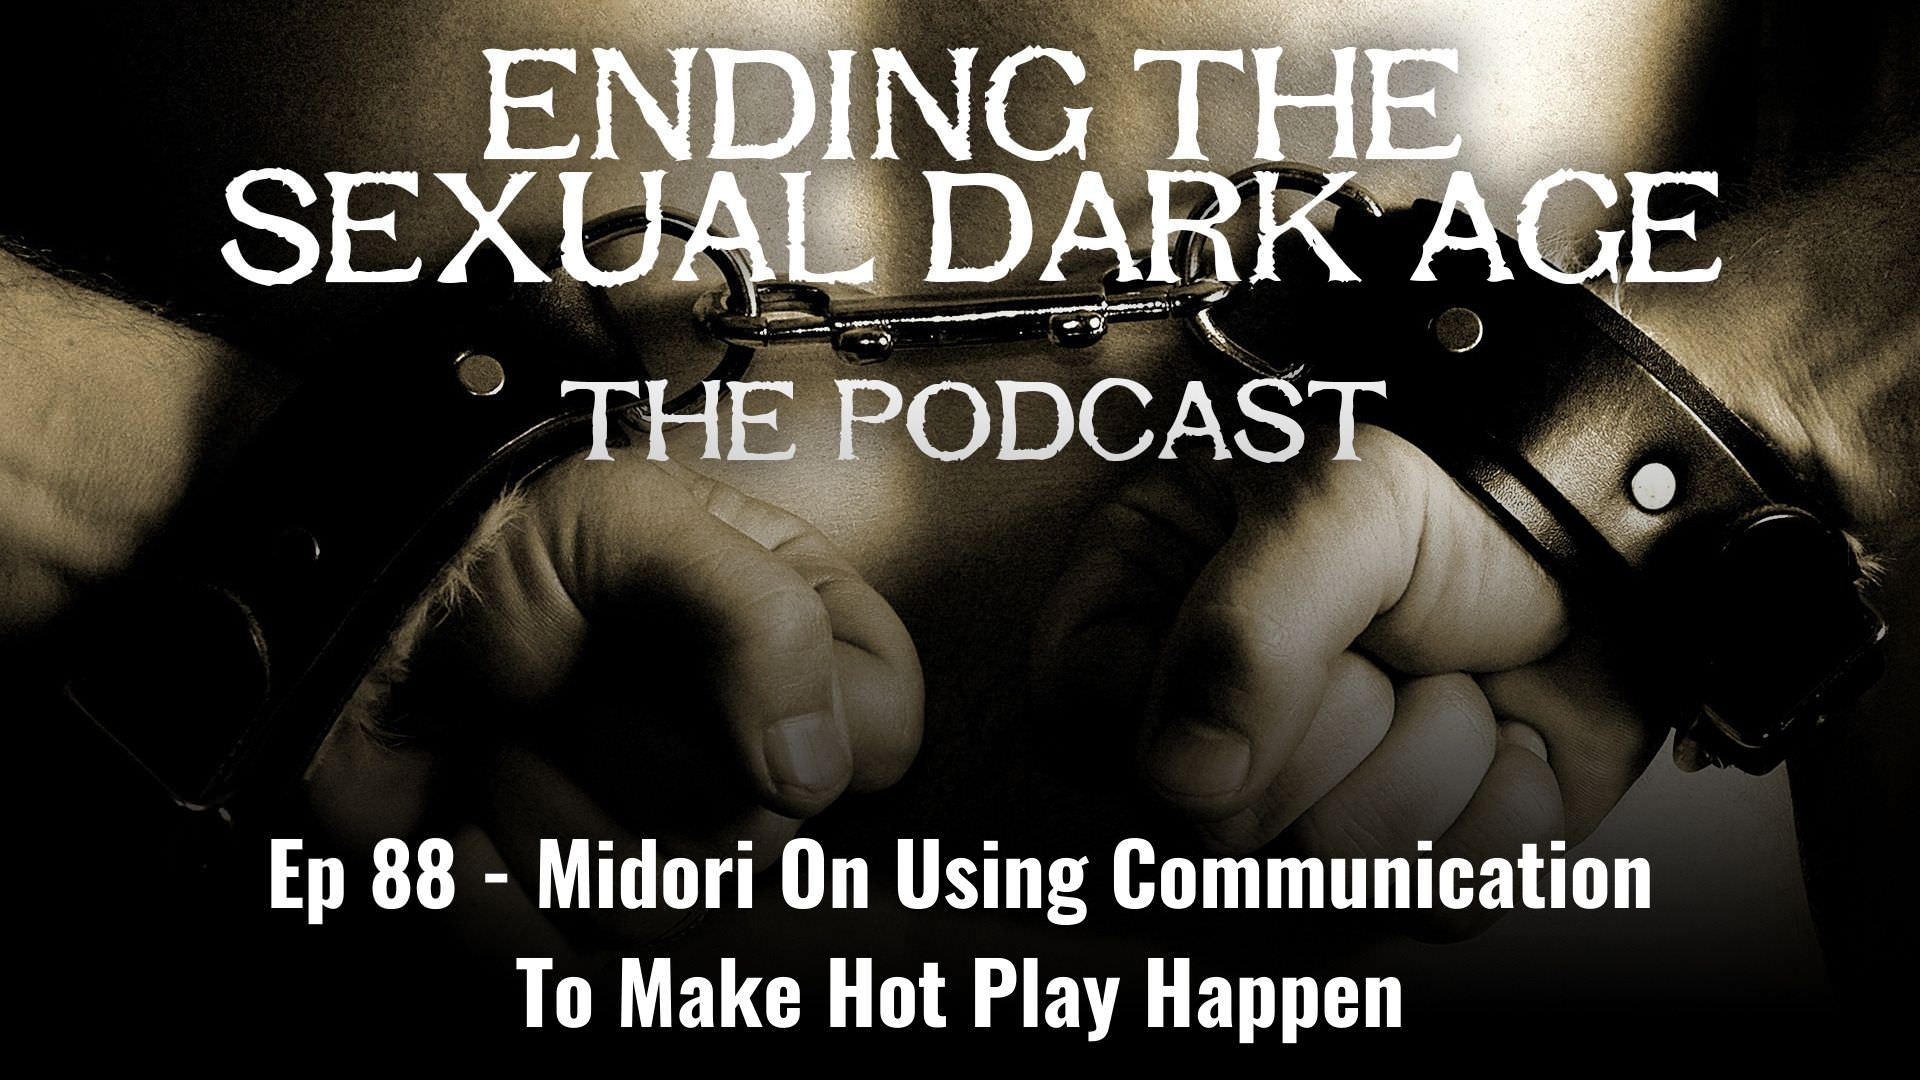 Episode 88 | Midori On Using Communication To Make Hot Play Happen